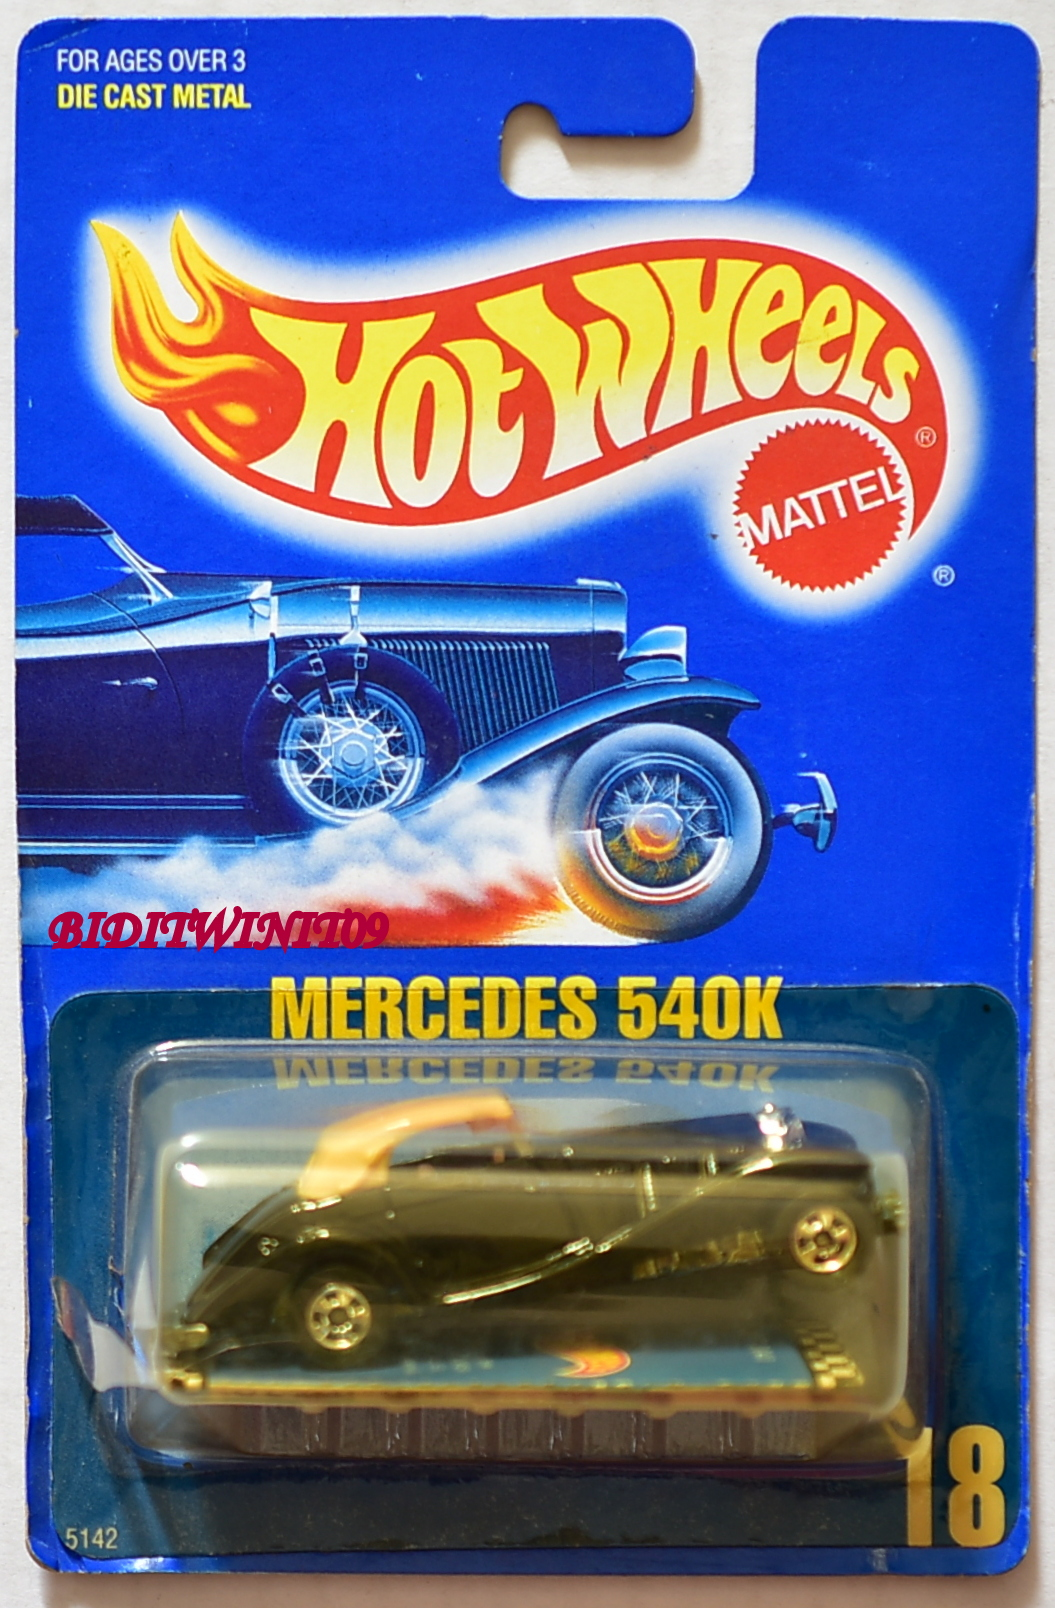 HOT WHEELS 1989 BLUE CARD MERCEDES 540K #18 03 E+